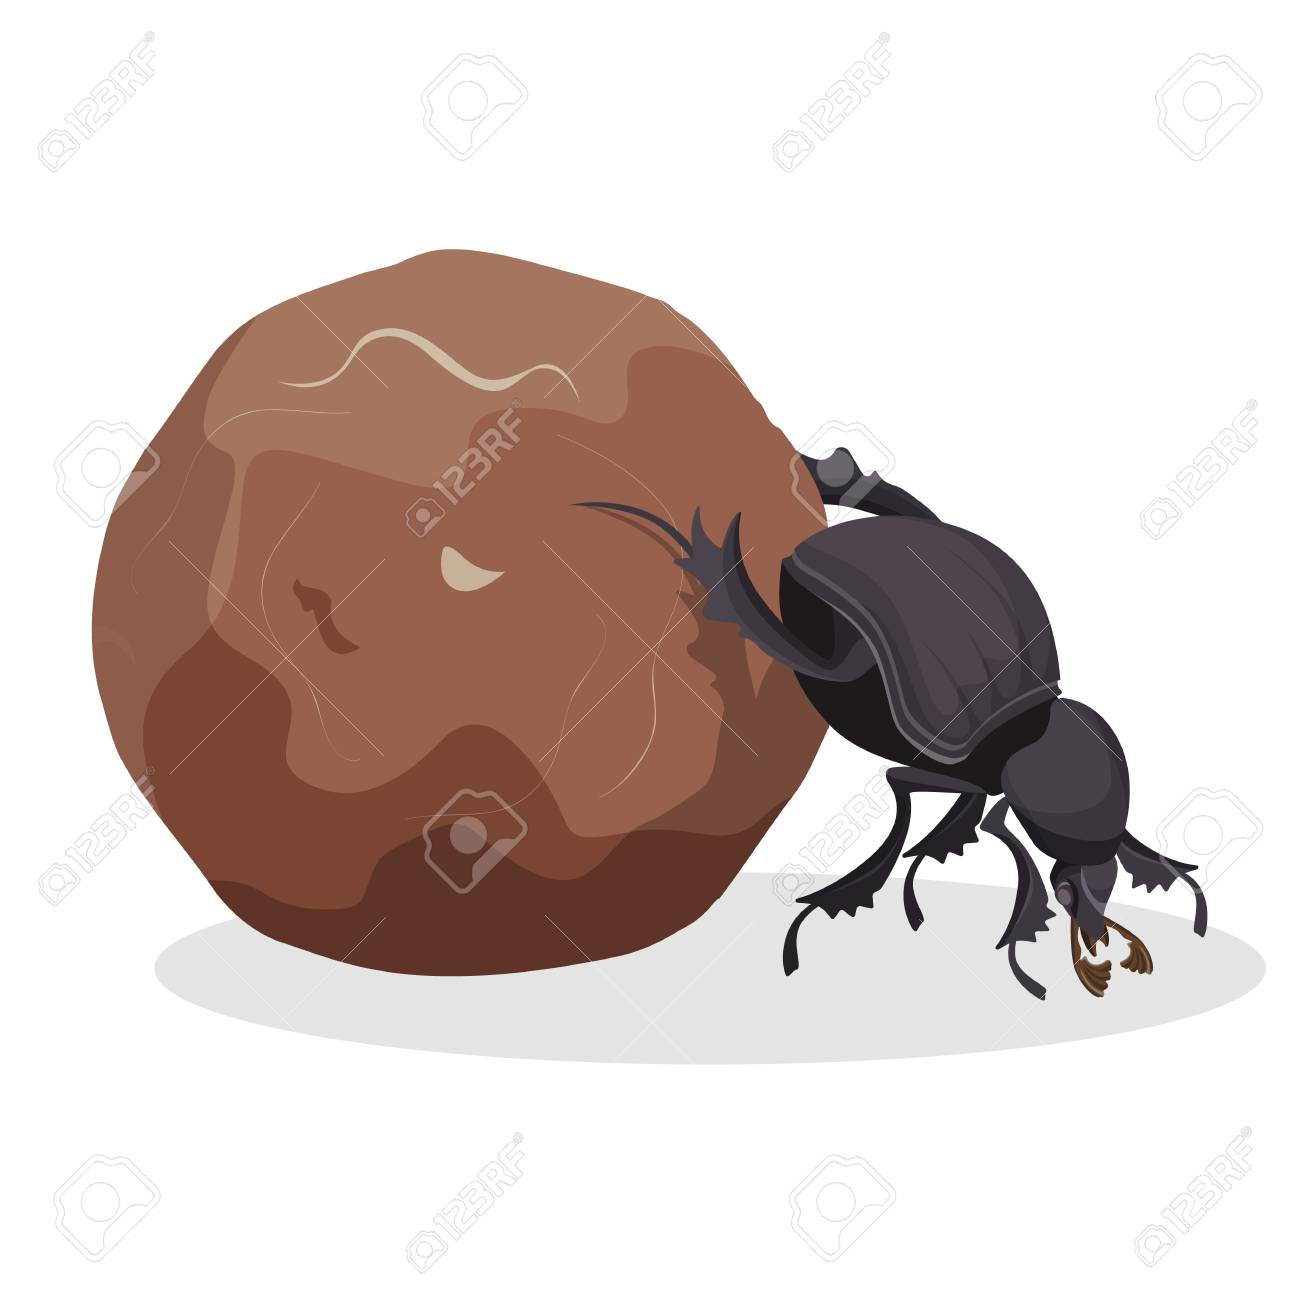 Big dung beetle that pushes big dirty ball. Small strong bug that collects mug. Funny creature from fauna world isolated cartoon flat vector illustration. - 95393679